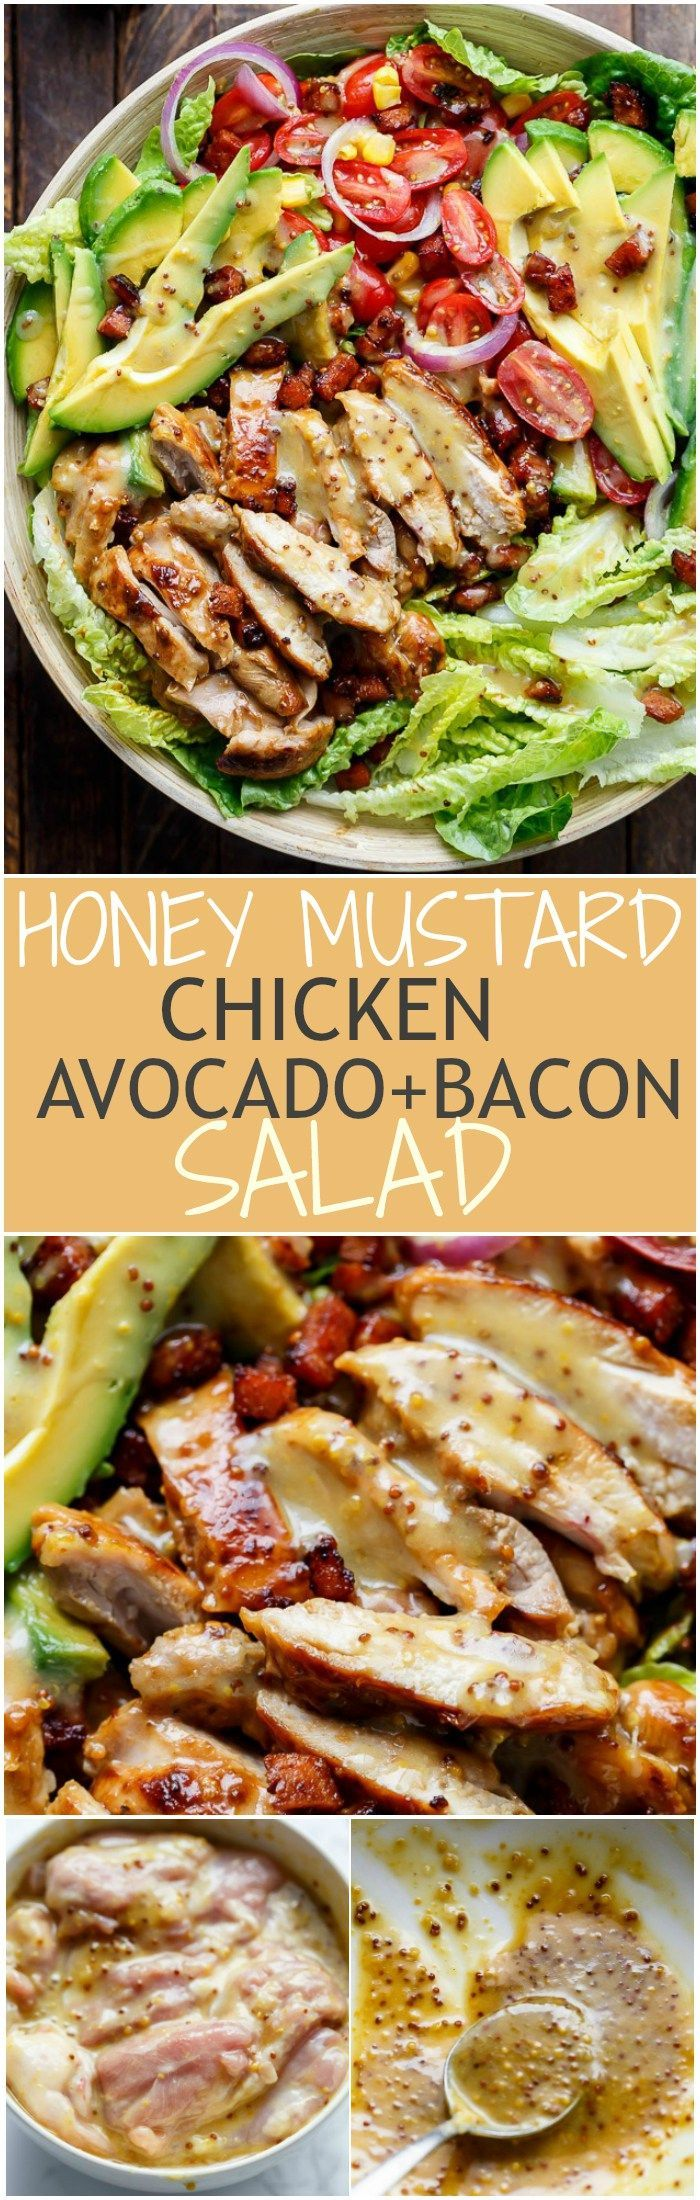 Honey Mustard Chicken, Avocado + Bacon Salad, with a crazy good Honey Mustard dressing withOUT mayonna